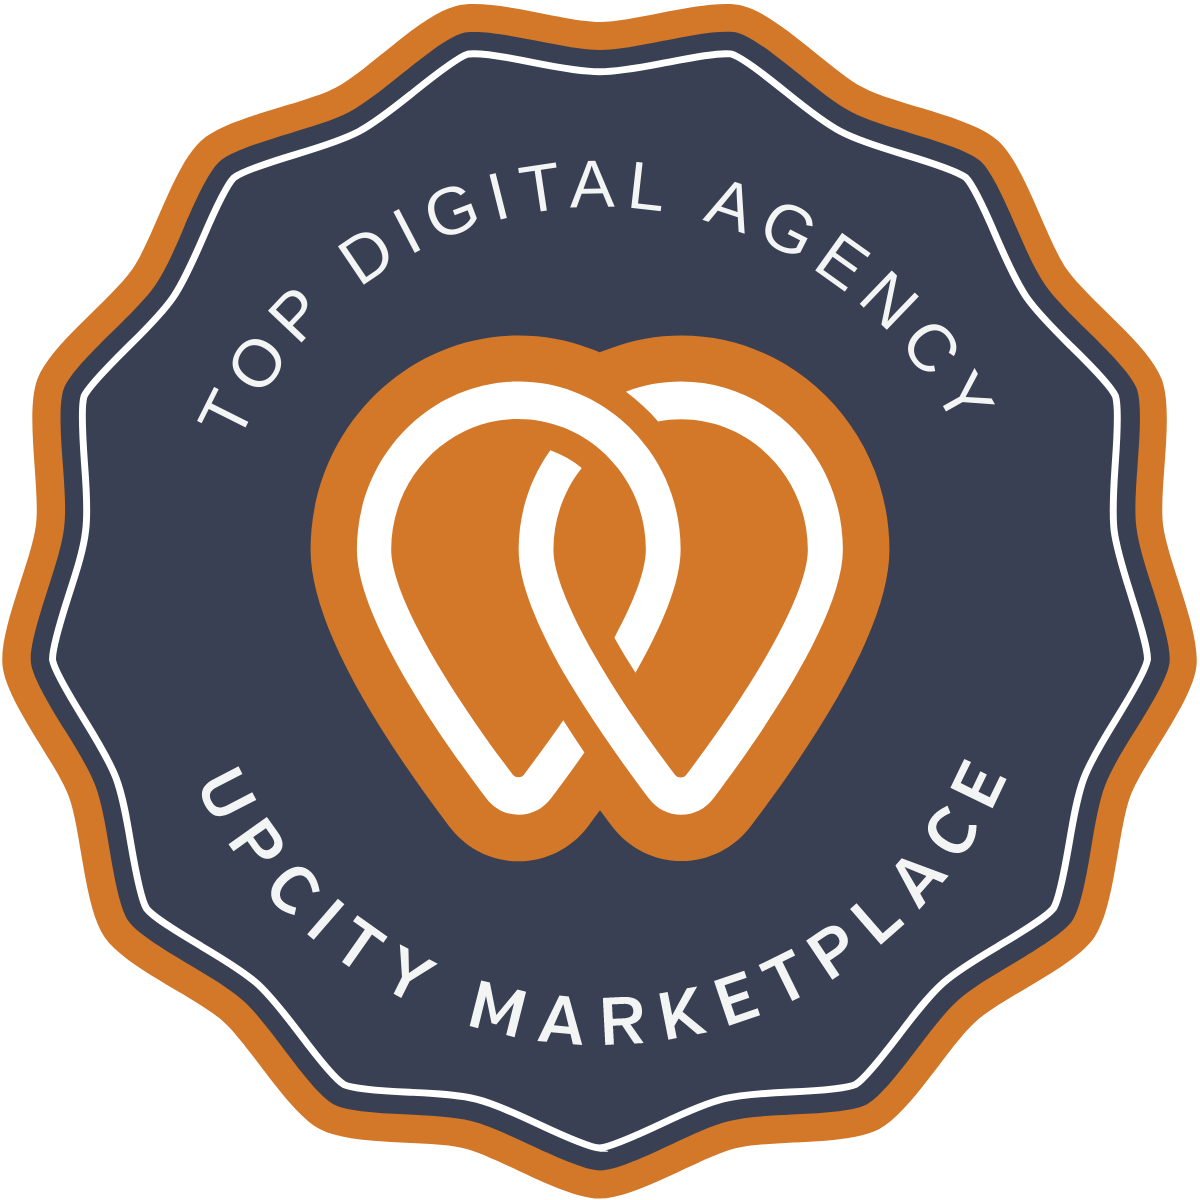 UpCity partner badge